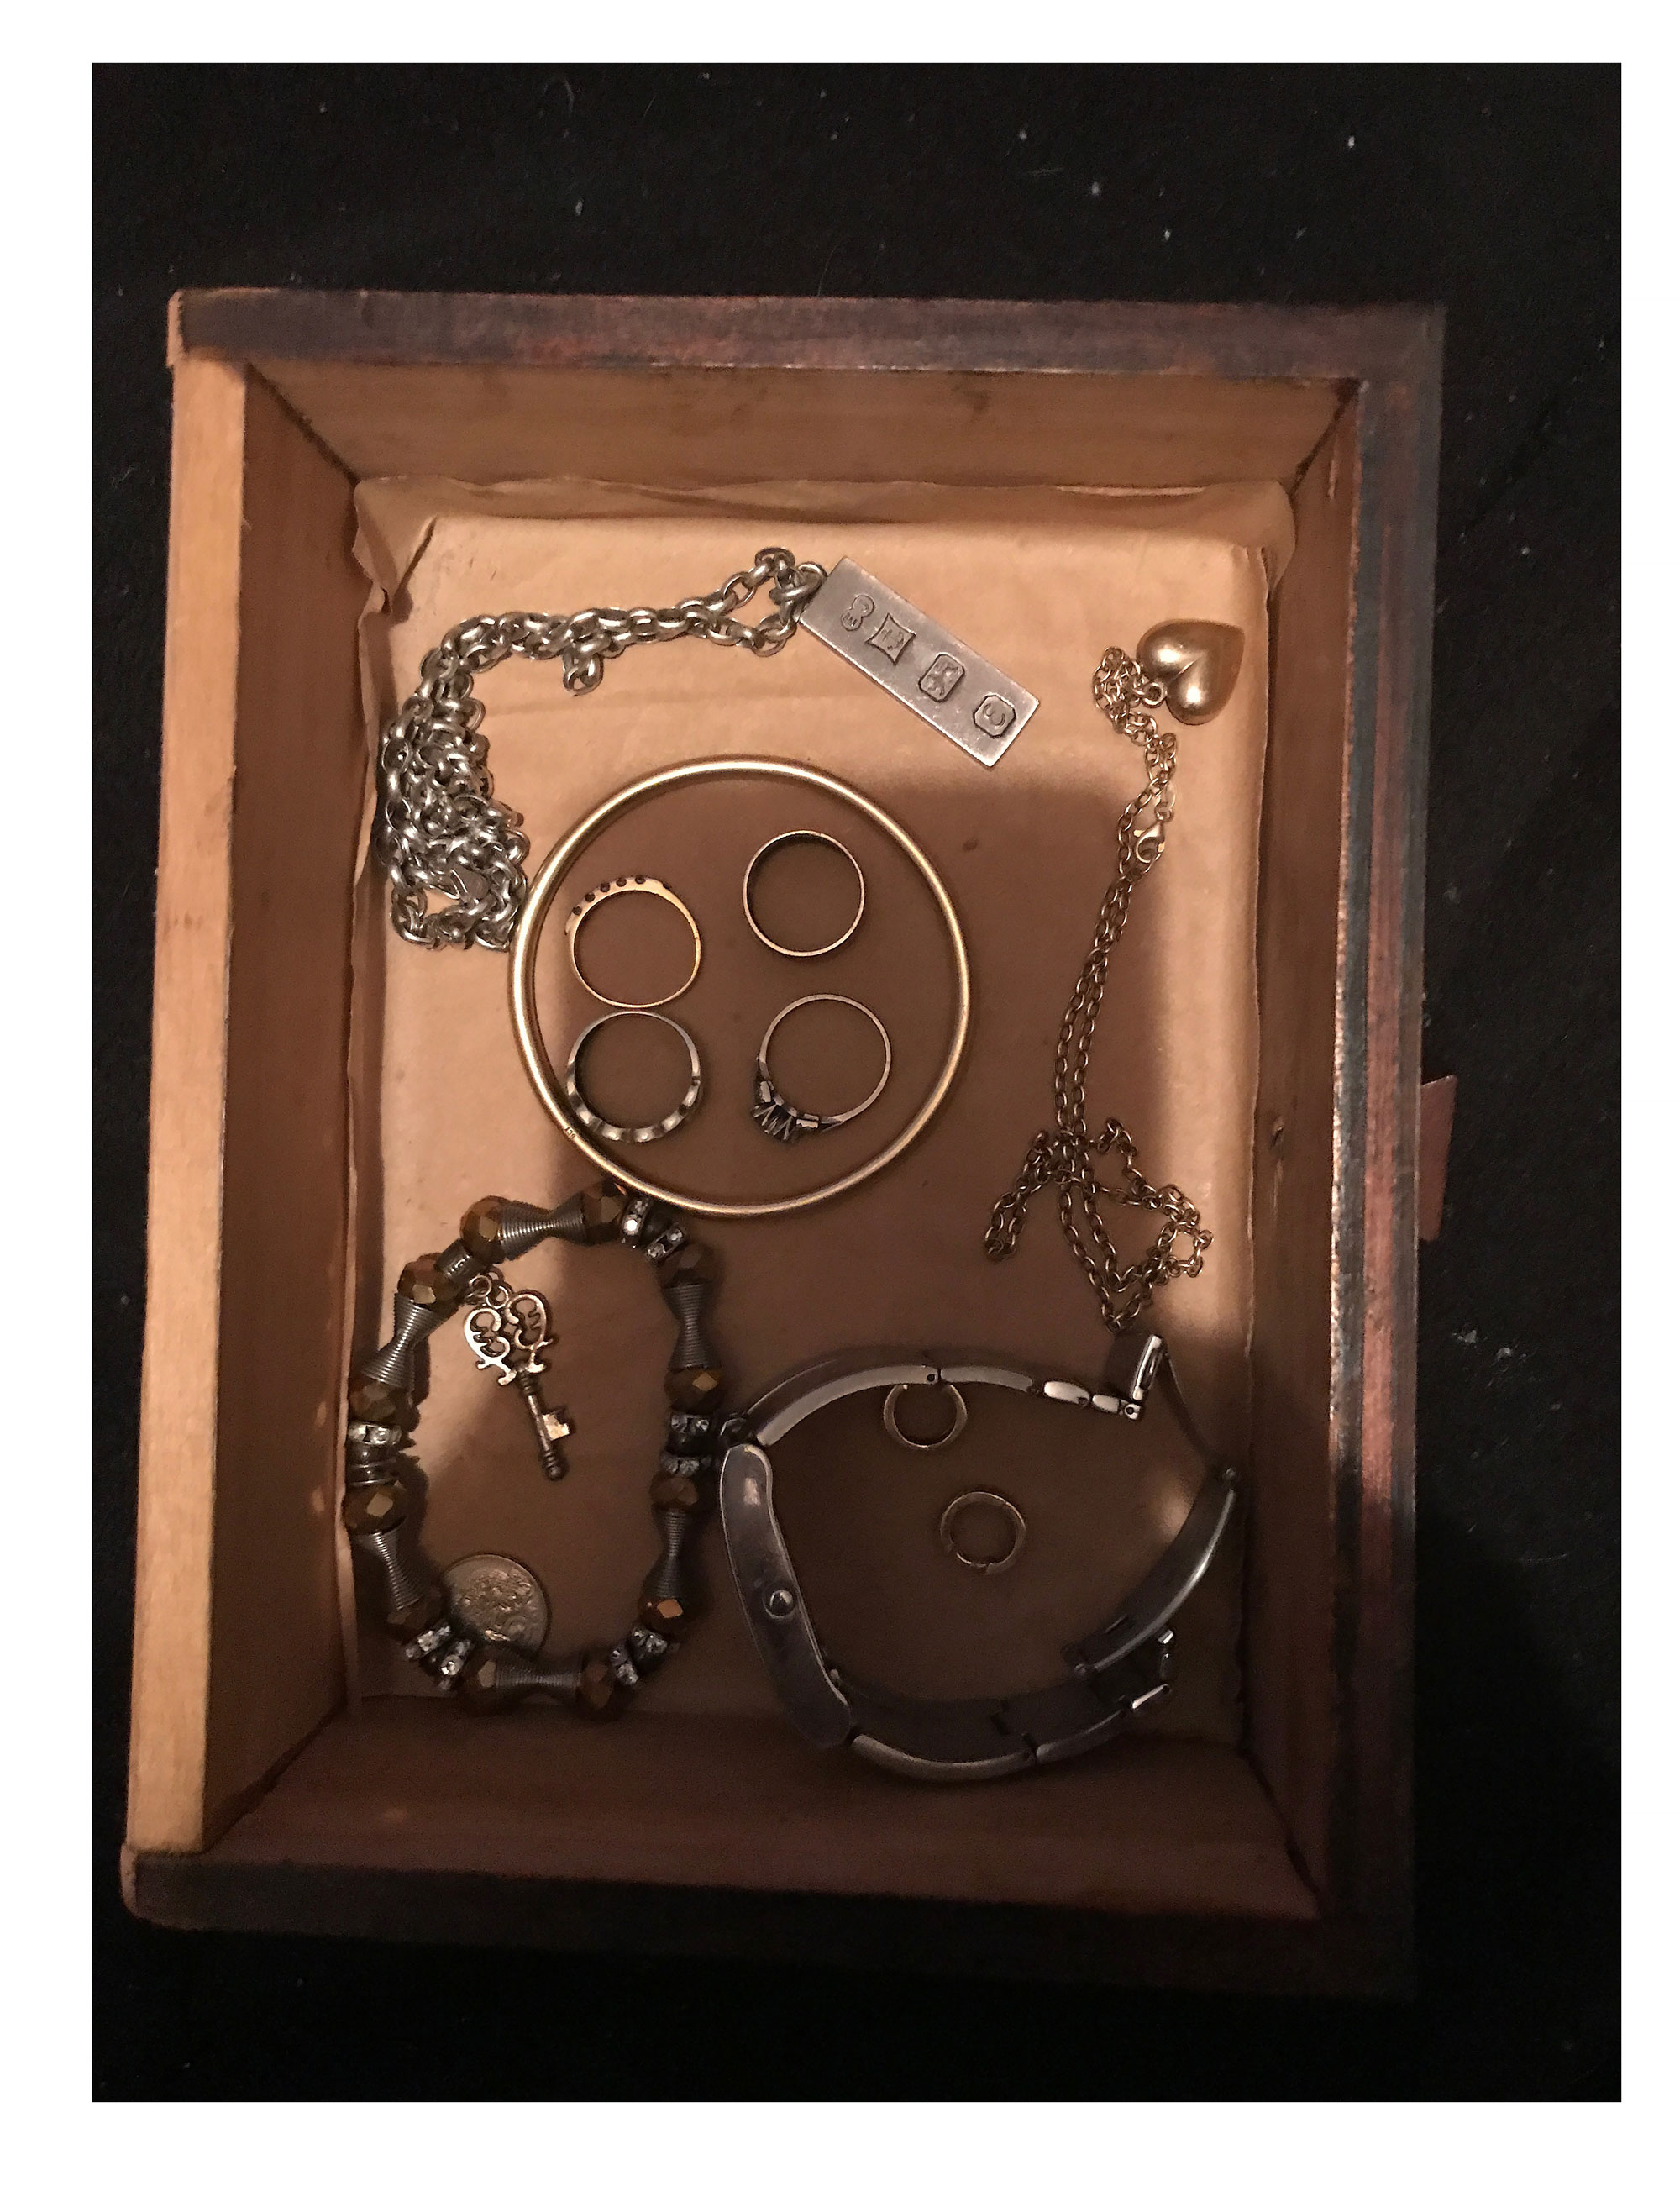 Mum's jewellery, at rest in the drawer her grandfather made, 2 September 2017